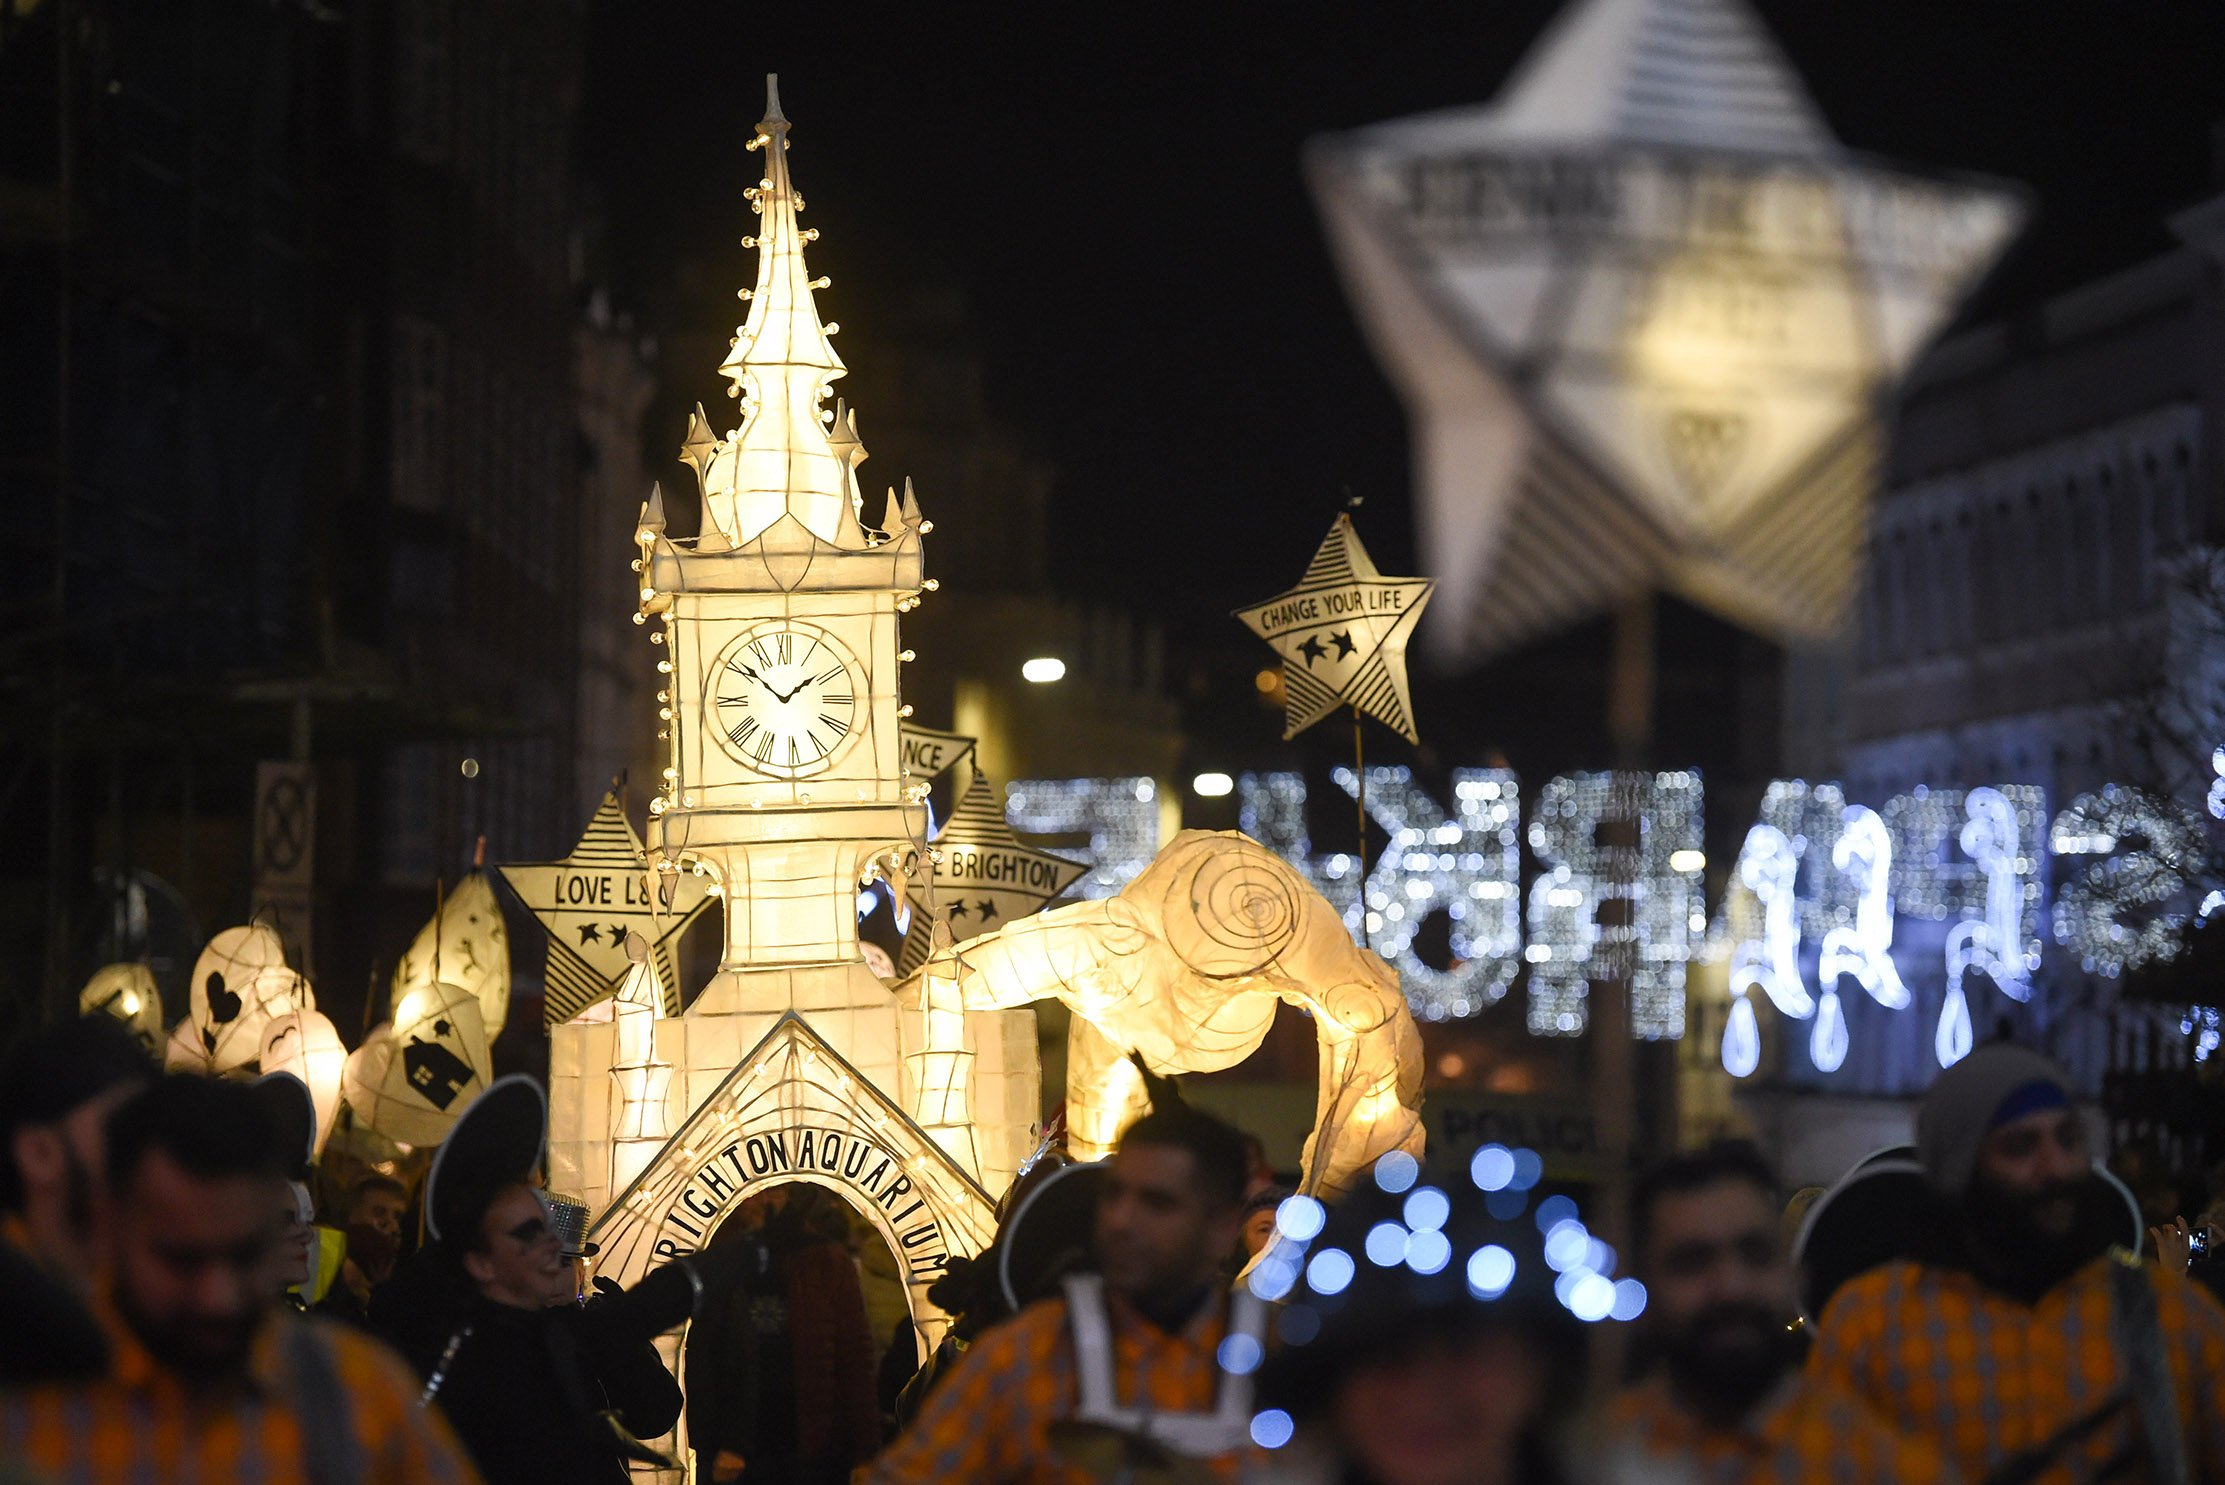 Burning The Clocks comes to the streets of Brighton on Sat 21 Dec 2019